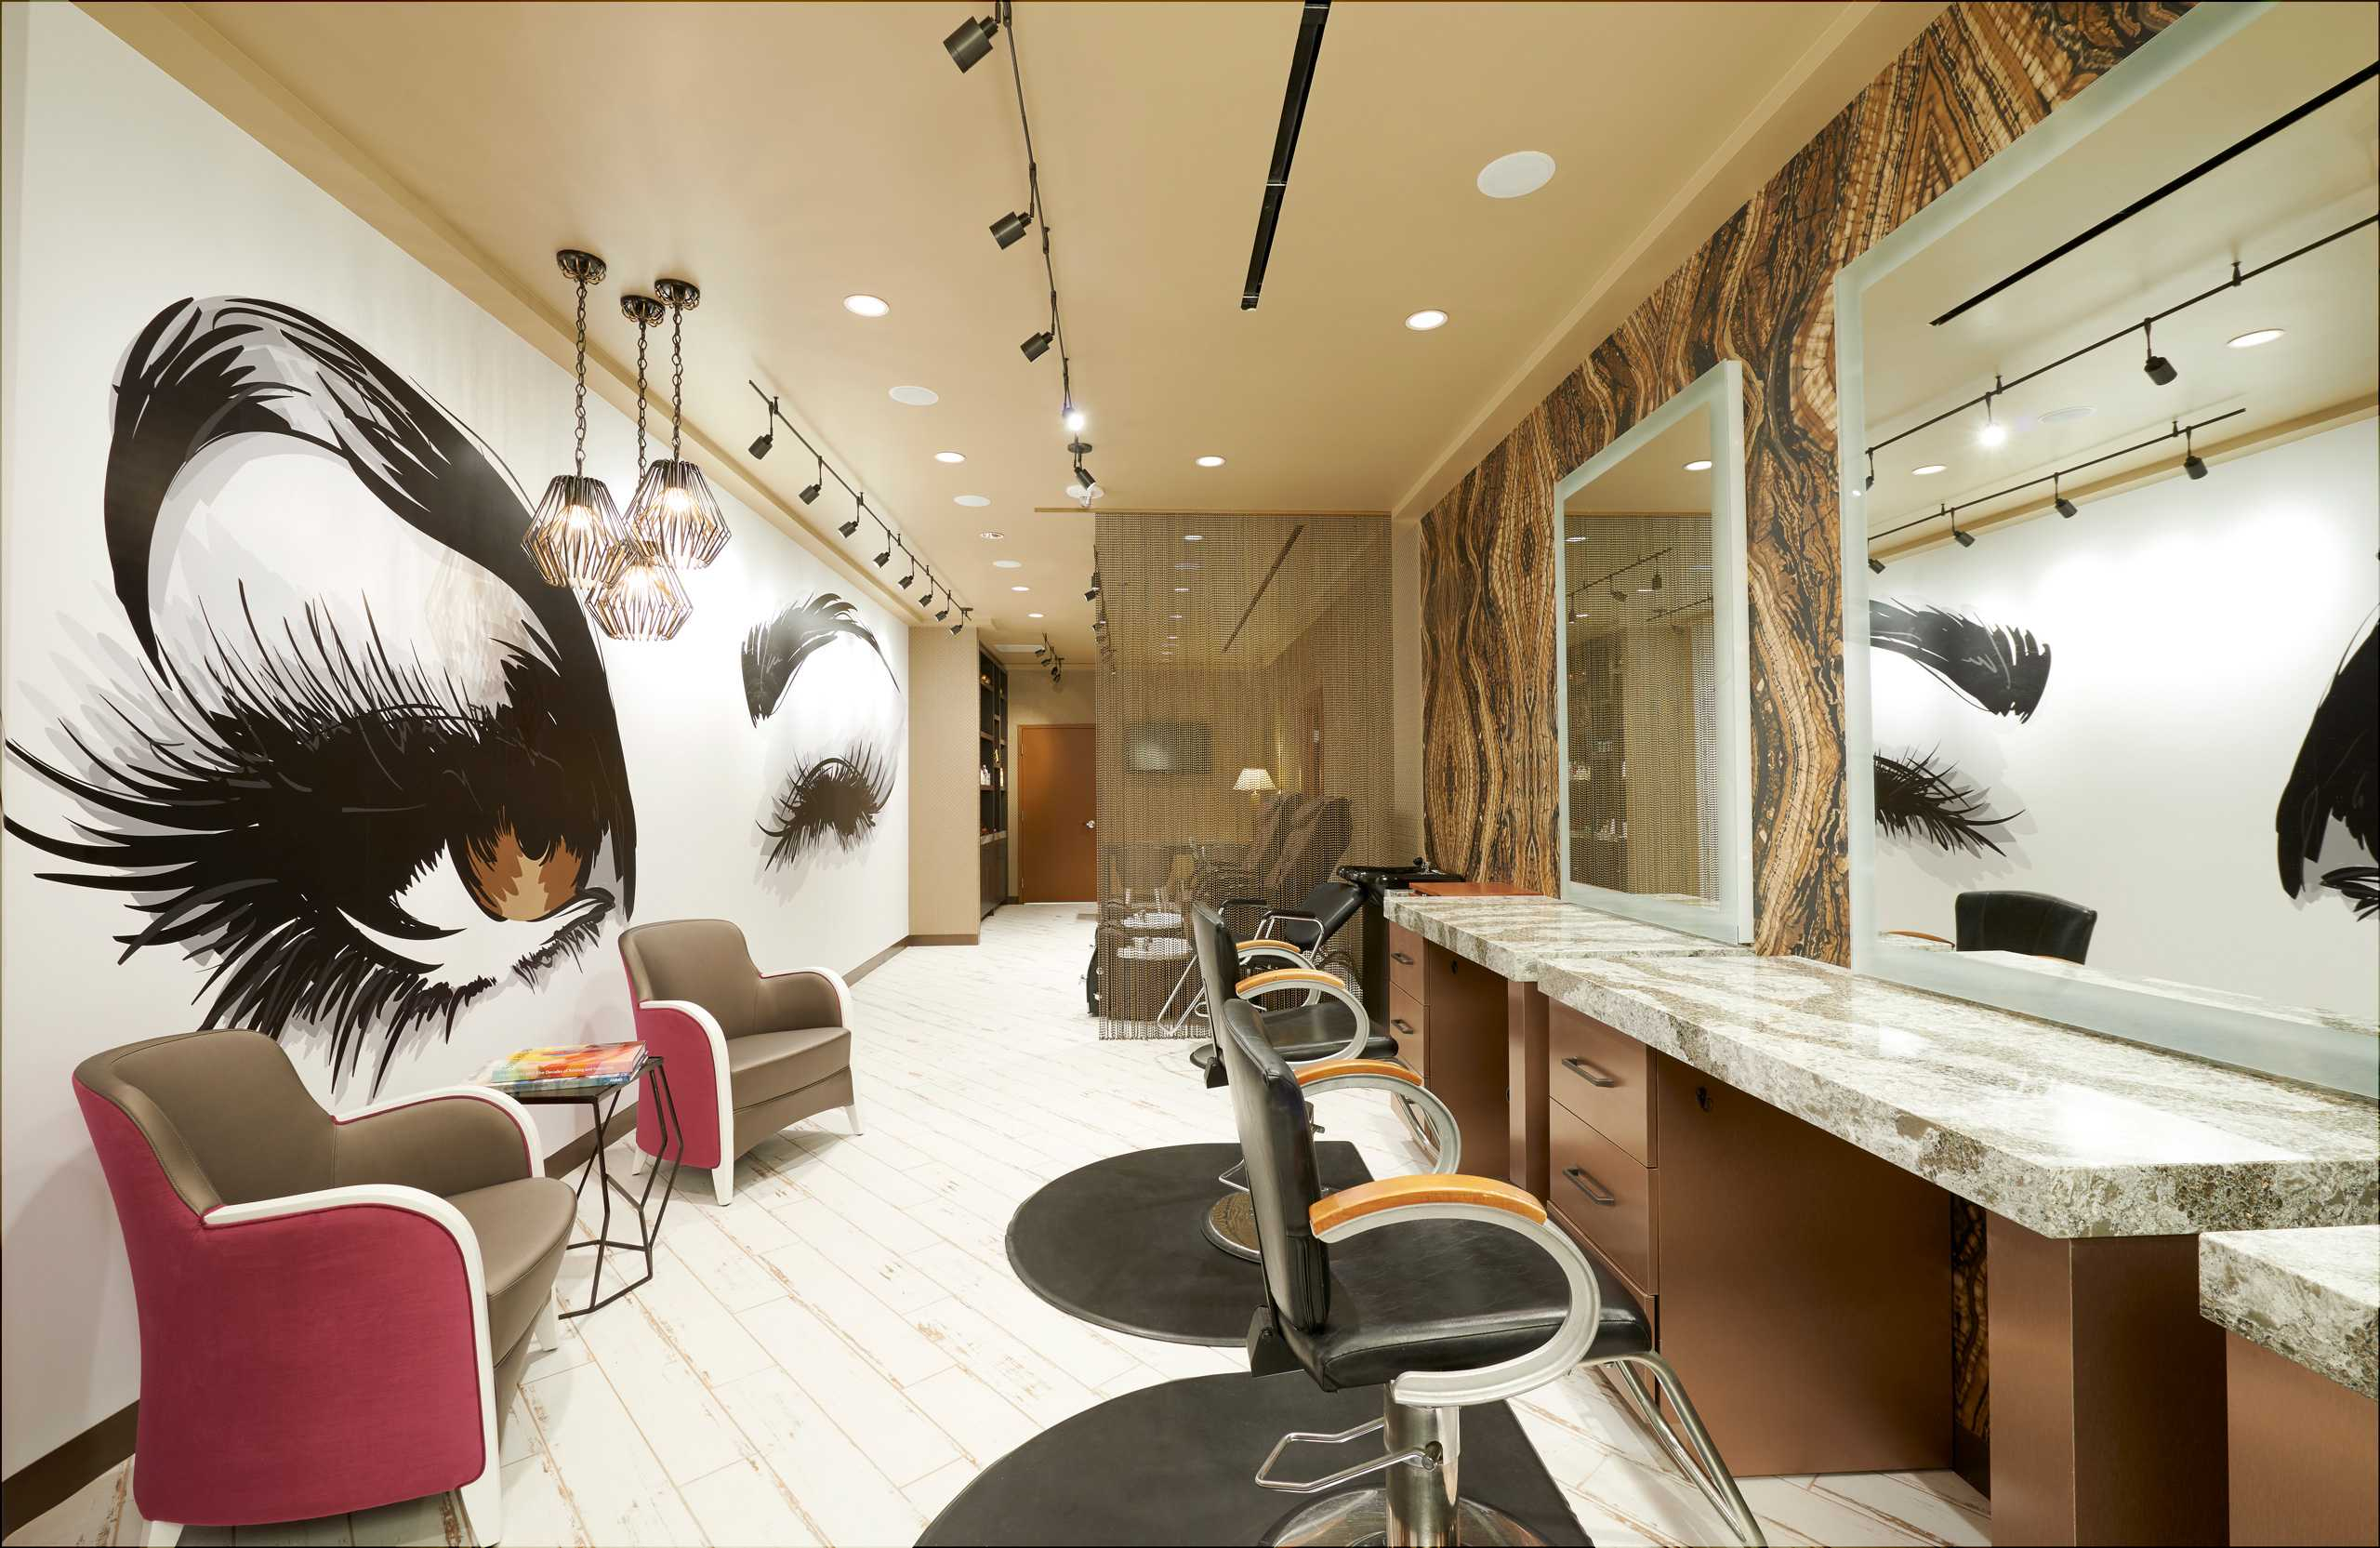 The New Salon at The Westin Hotel and Spa in Las Vegas